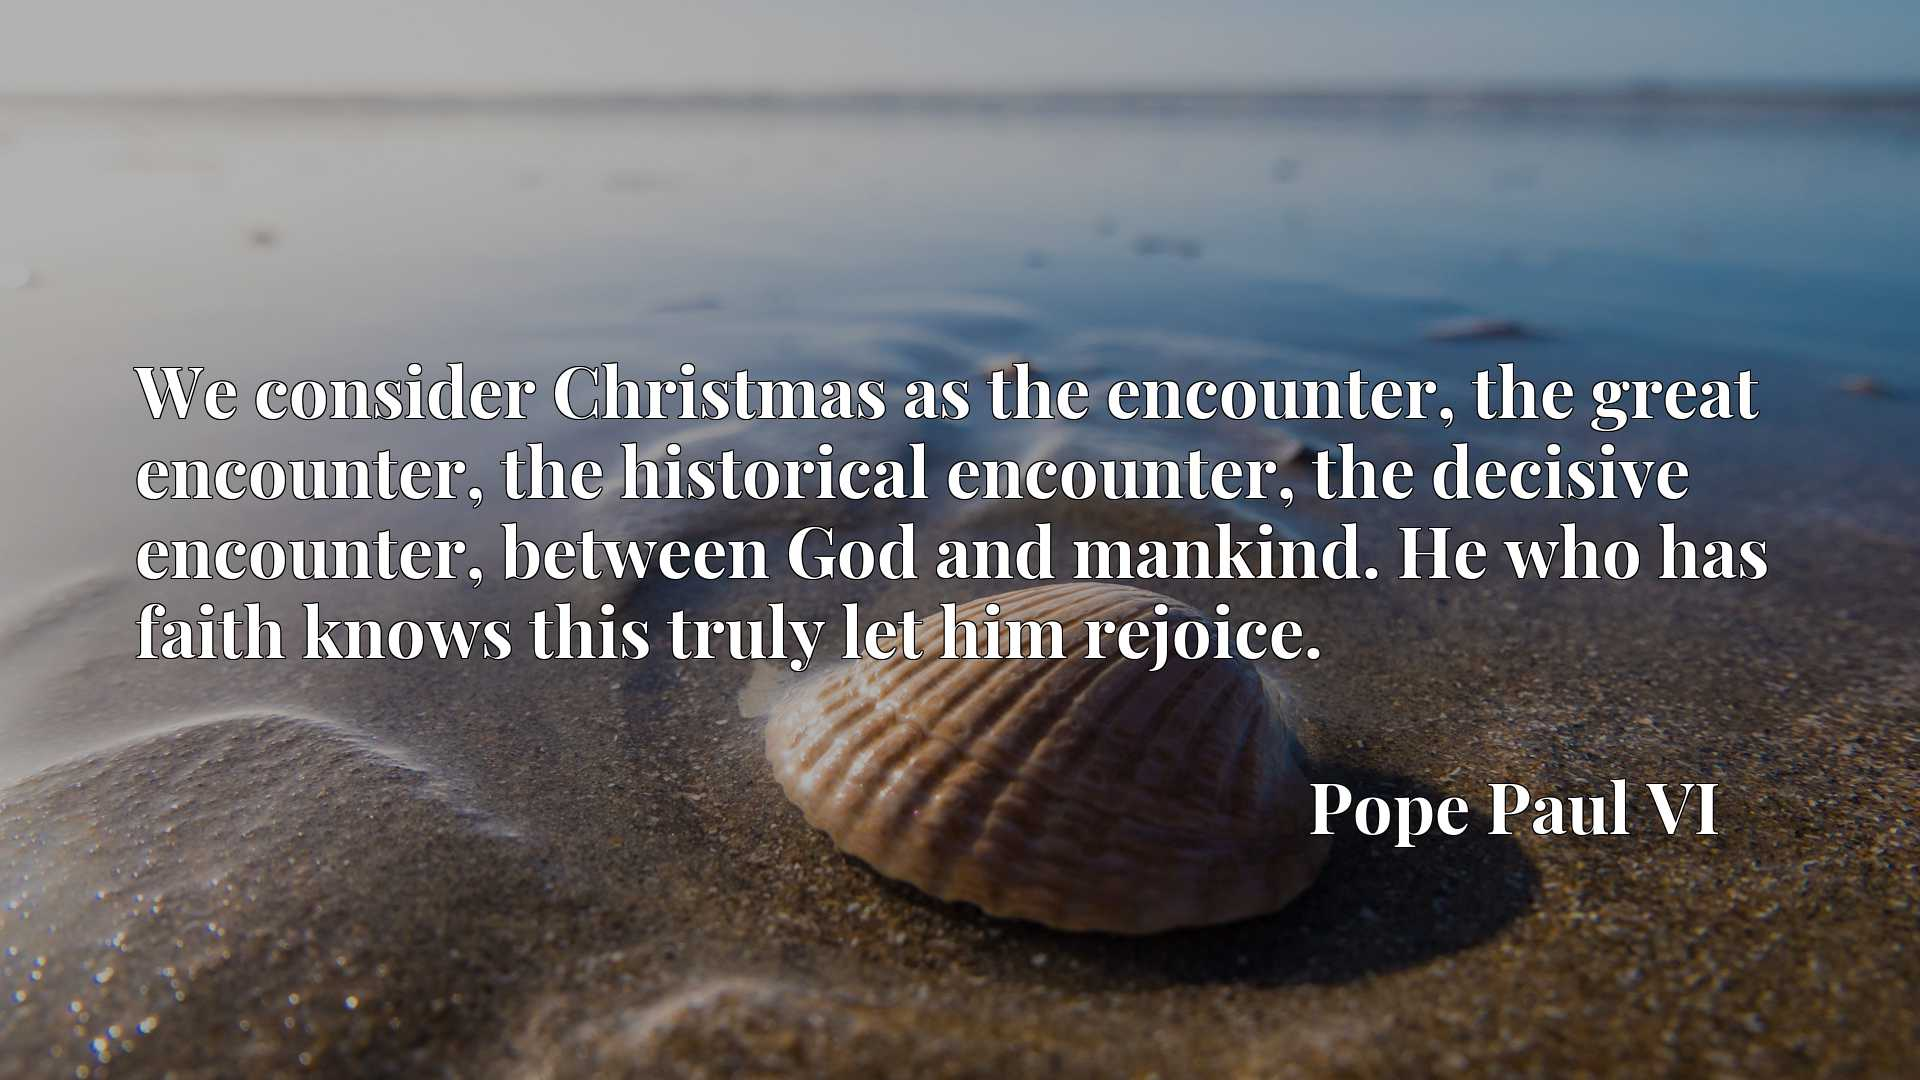 We consider Christmas as the encounter, the great encounter, the historical encounter, the decisive encounter, between God and mankind. He who has faith knows this truly let him rejoice.